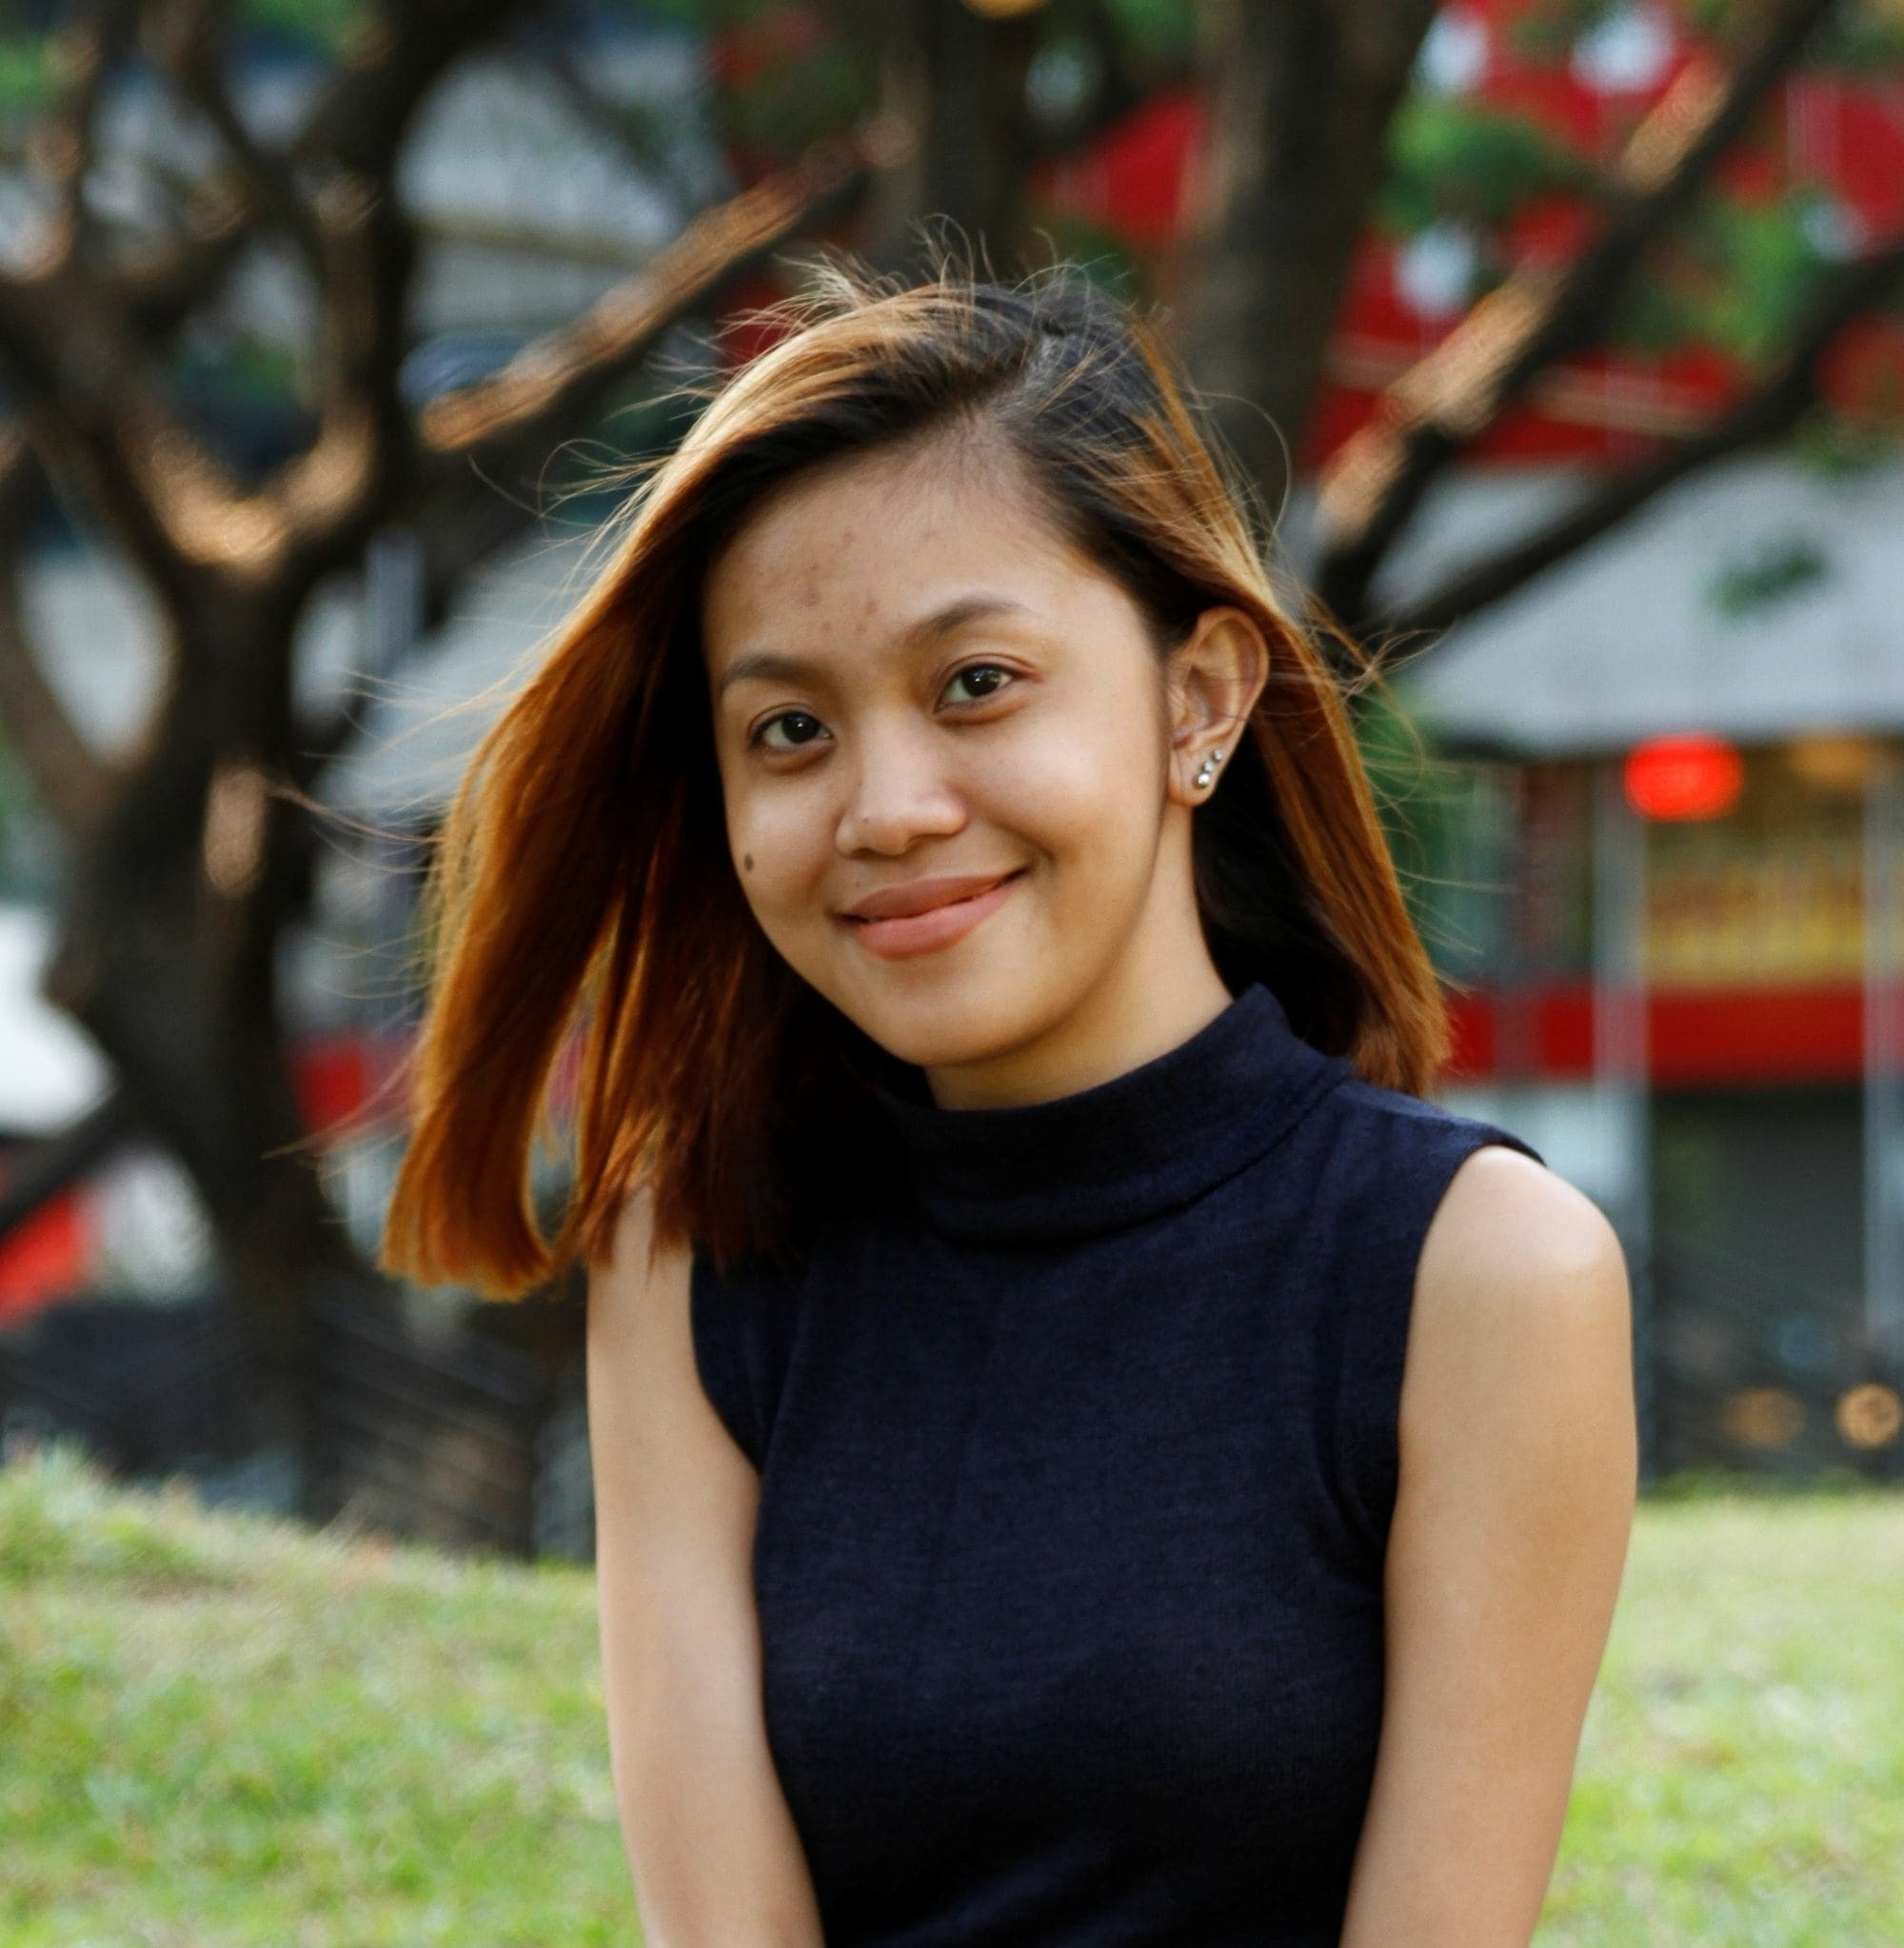 Filipina with shoulder-length dark brown hair smiling in a park